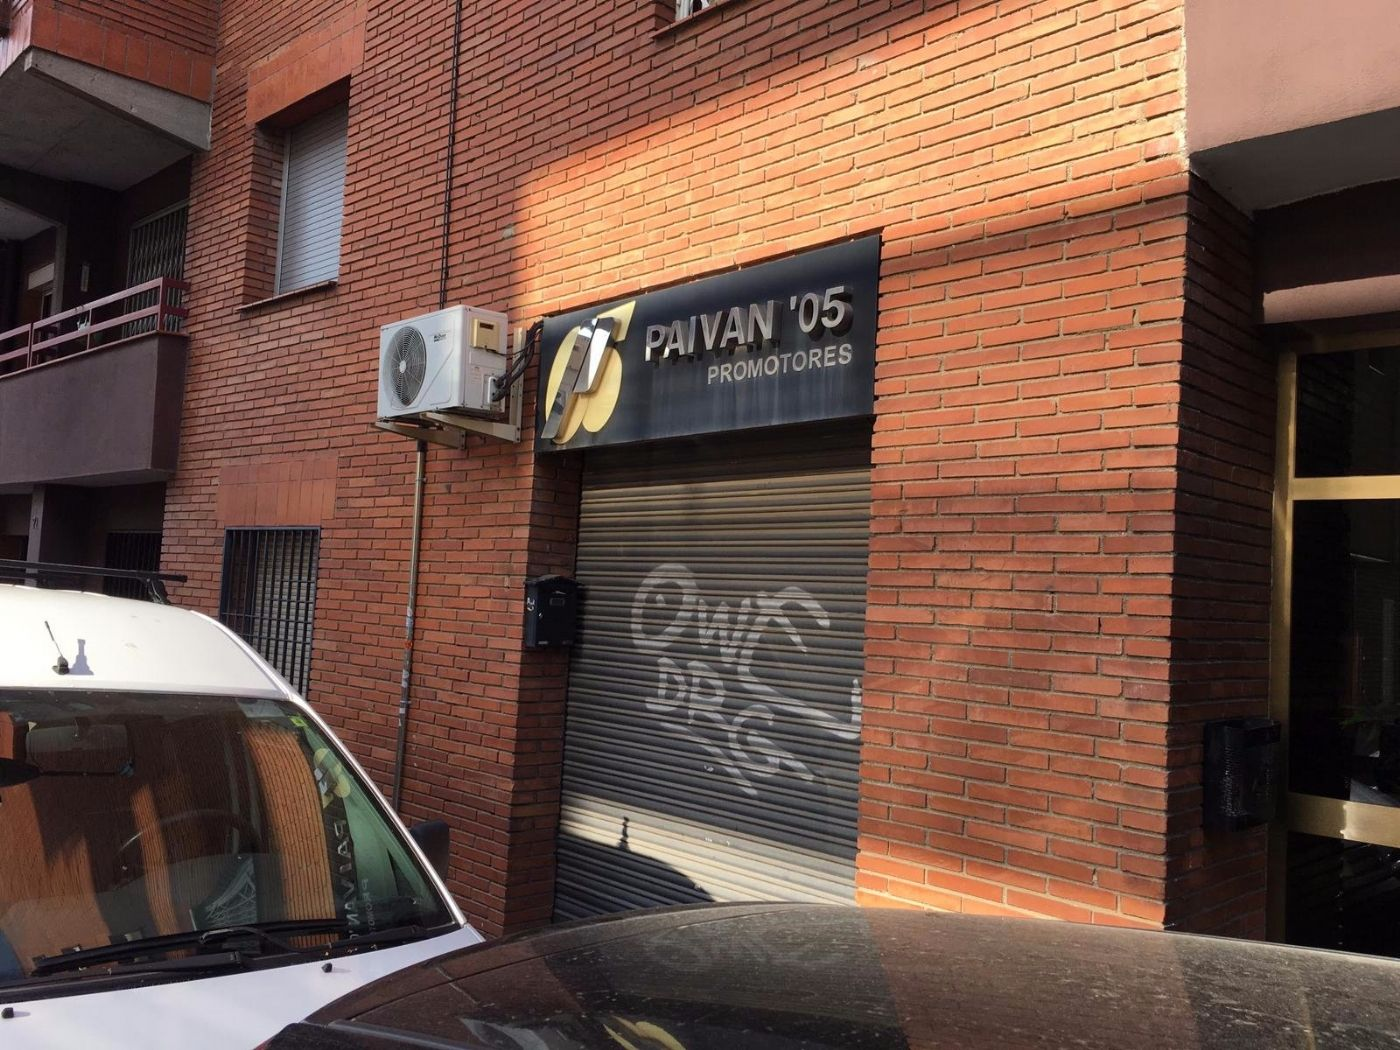 Oficina en Carrer doctor robert, 73. Urge vender